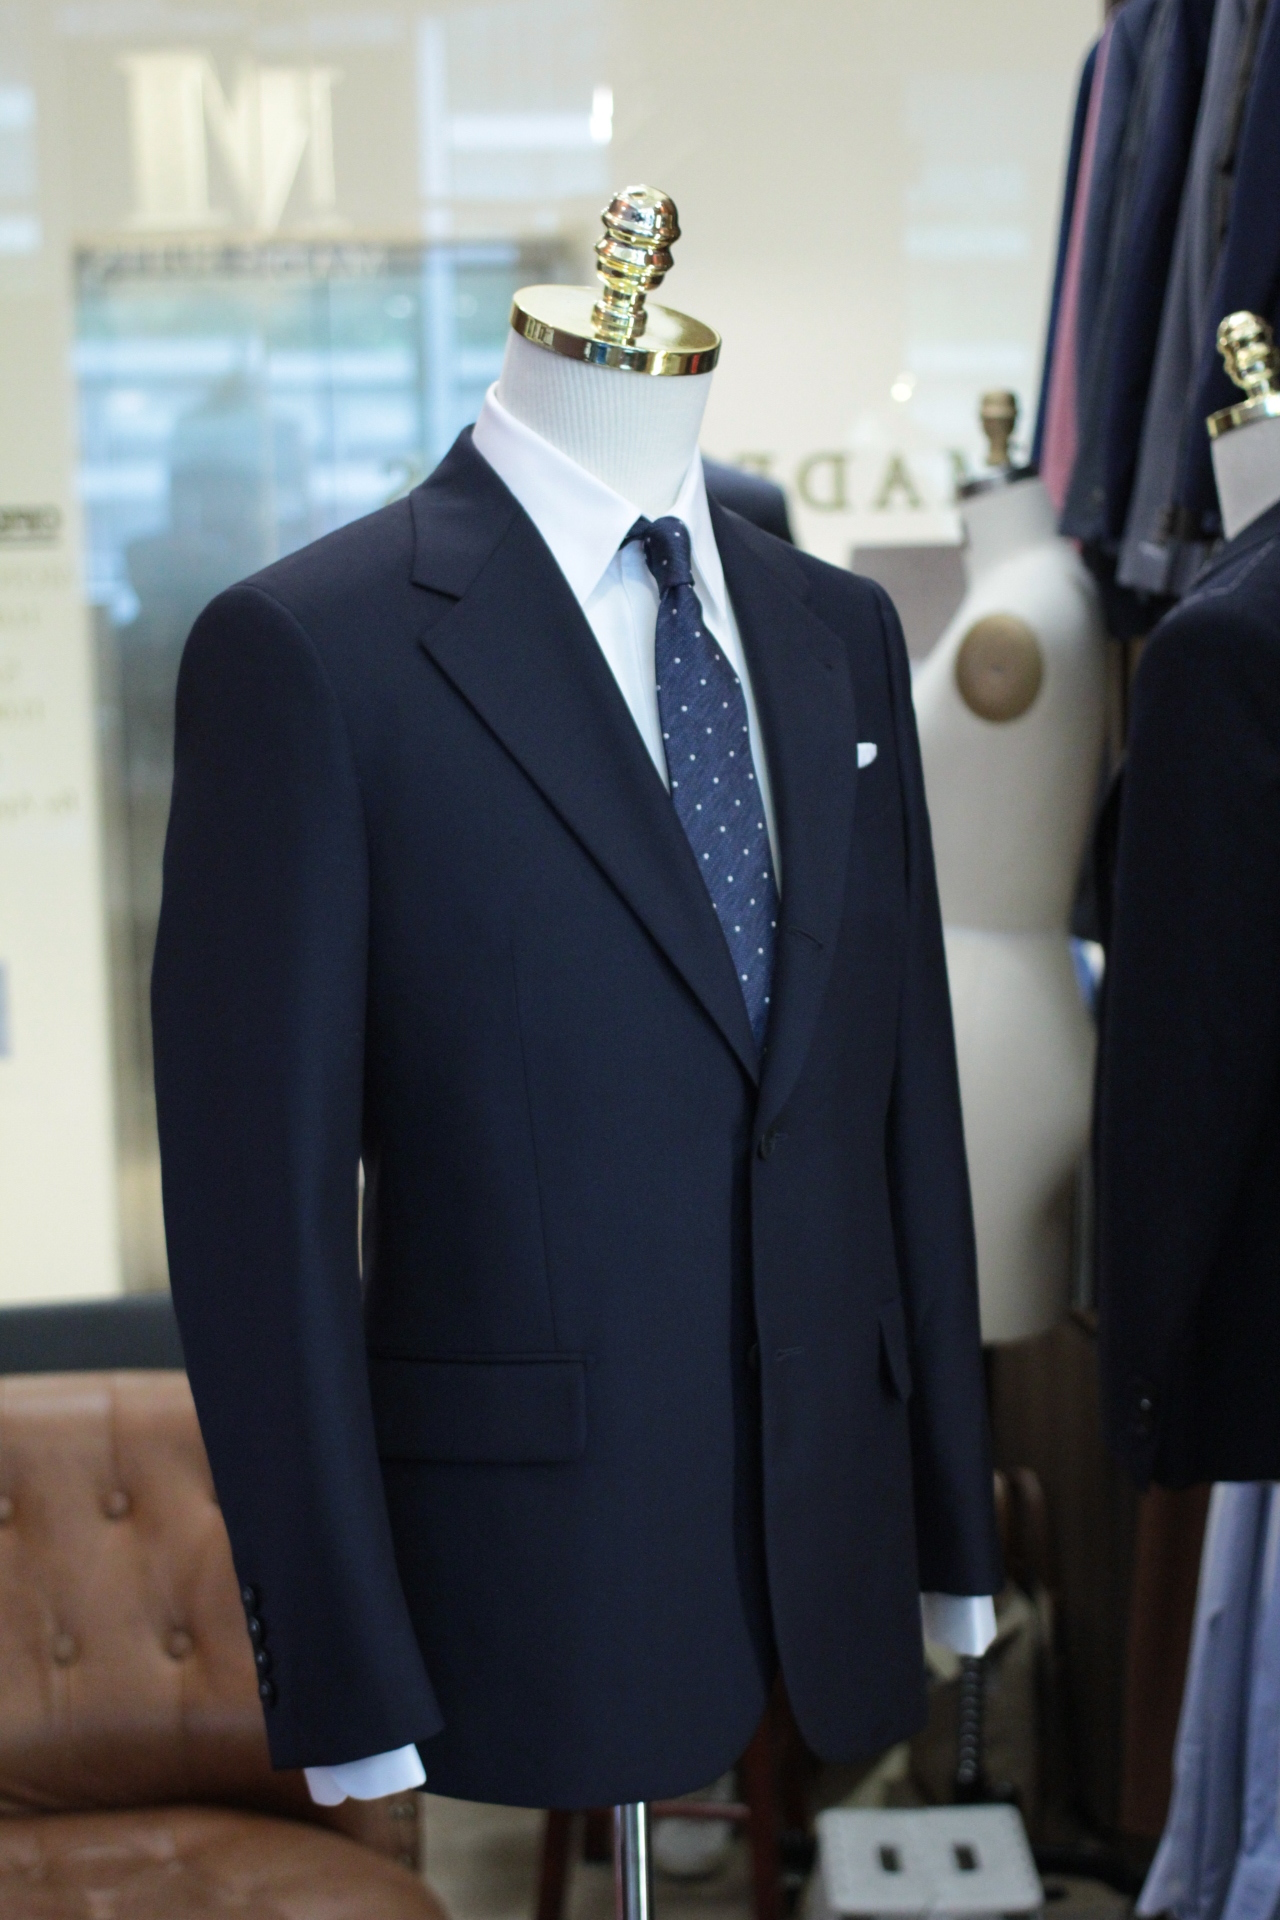 DRAGO BLUE NAVY   TAILOR MADE SUITS   STAPLE   SUPER 130.JPG